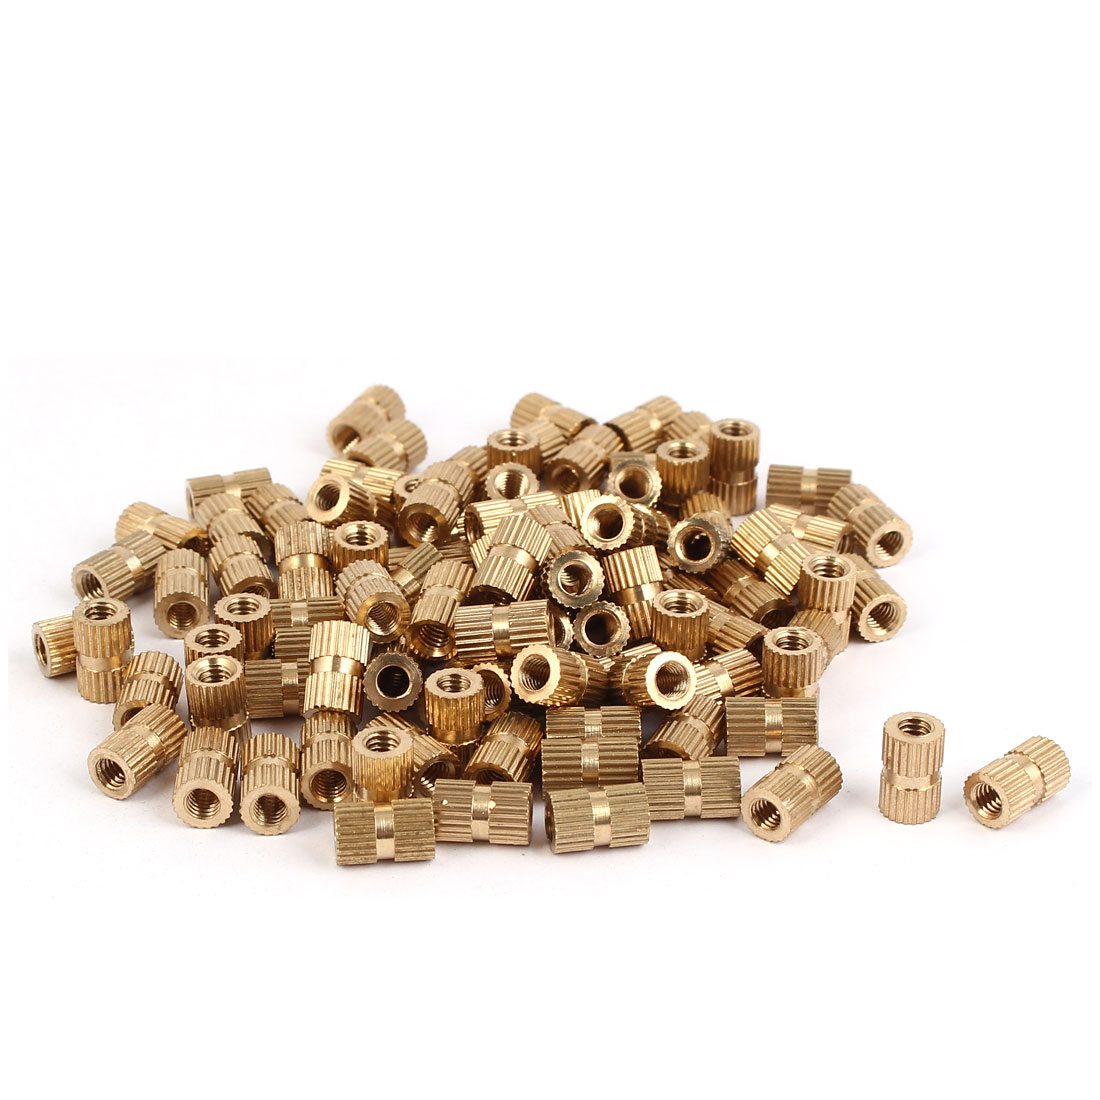 M4 x 10mm Brass Cylinder Injection Molding Knurled Threaded Insert Nuts 100PCS